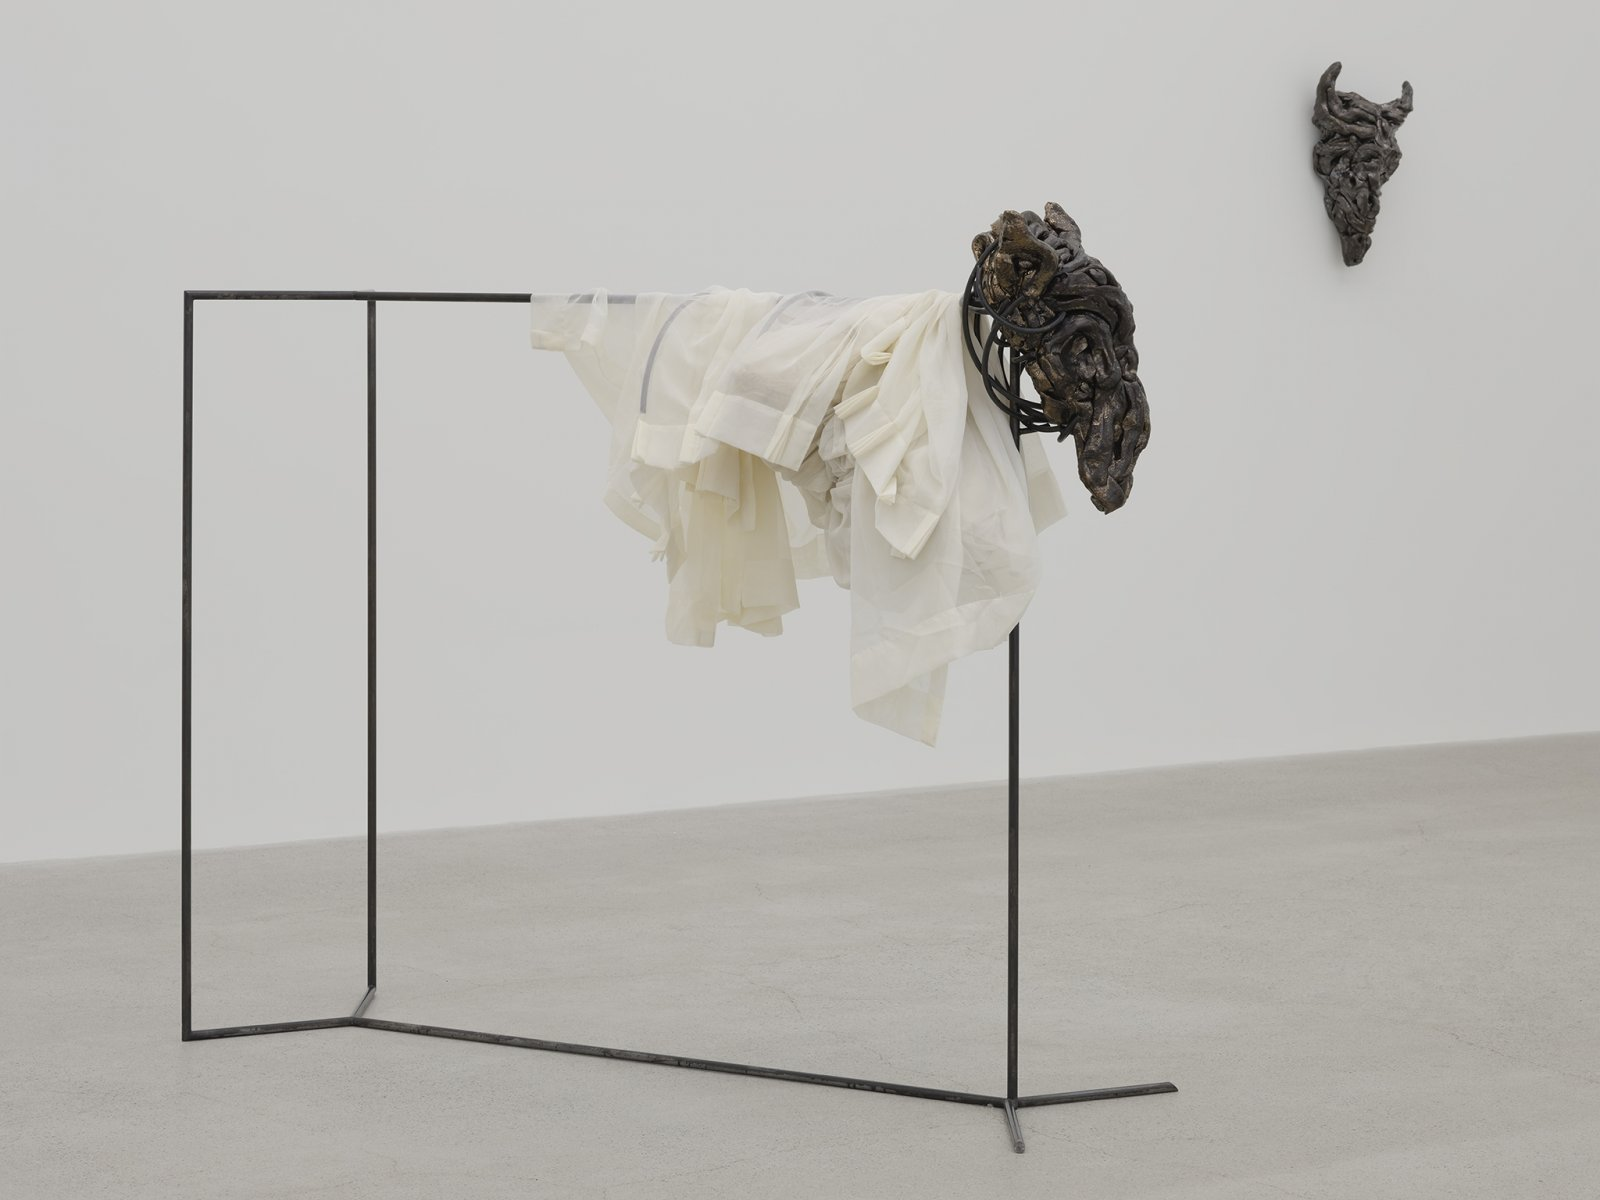 Rochelle Goldberg, Gatekeeper: It's growing at every cost, 2019, glazed ceramic, steel, curtain, polyester fabric, pillow, 55 x 21 x 64 in. (140 x 52 x 163 cm) by Rochelle Goldberg